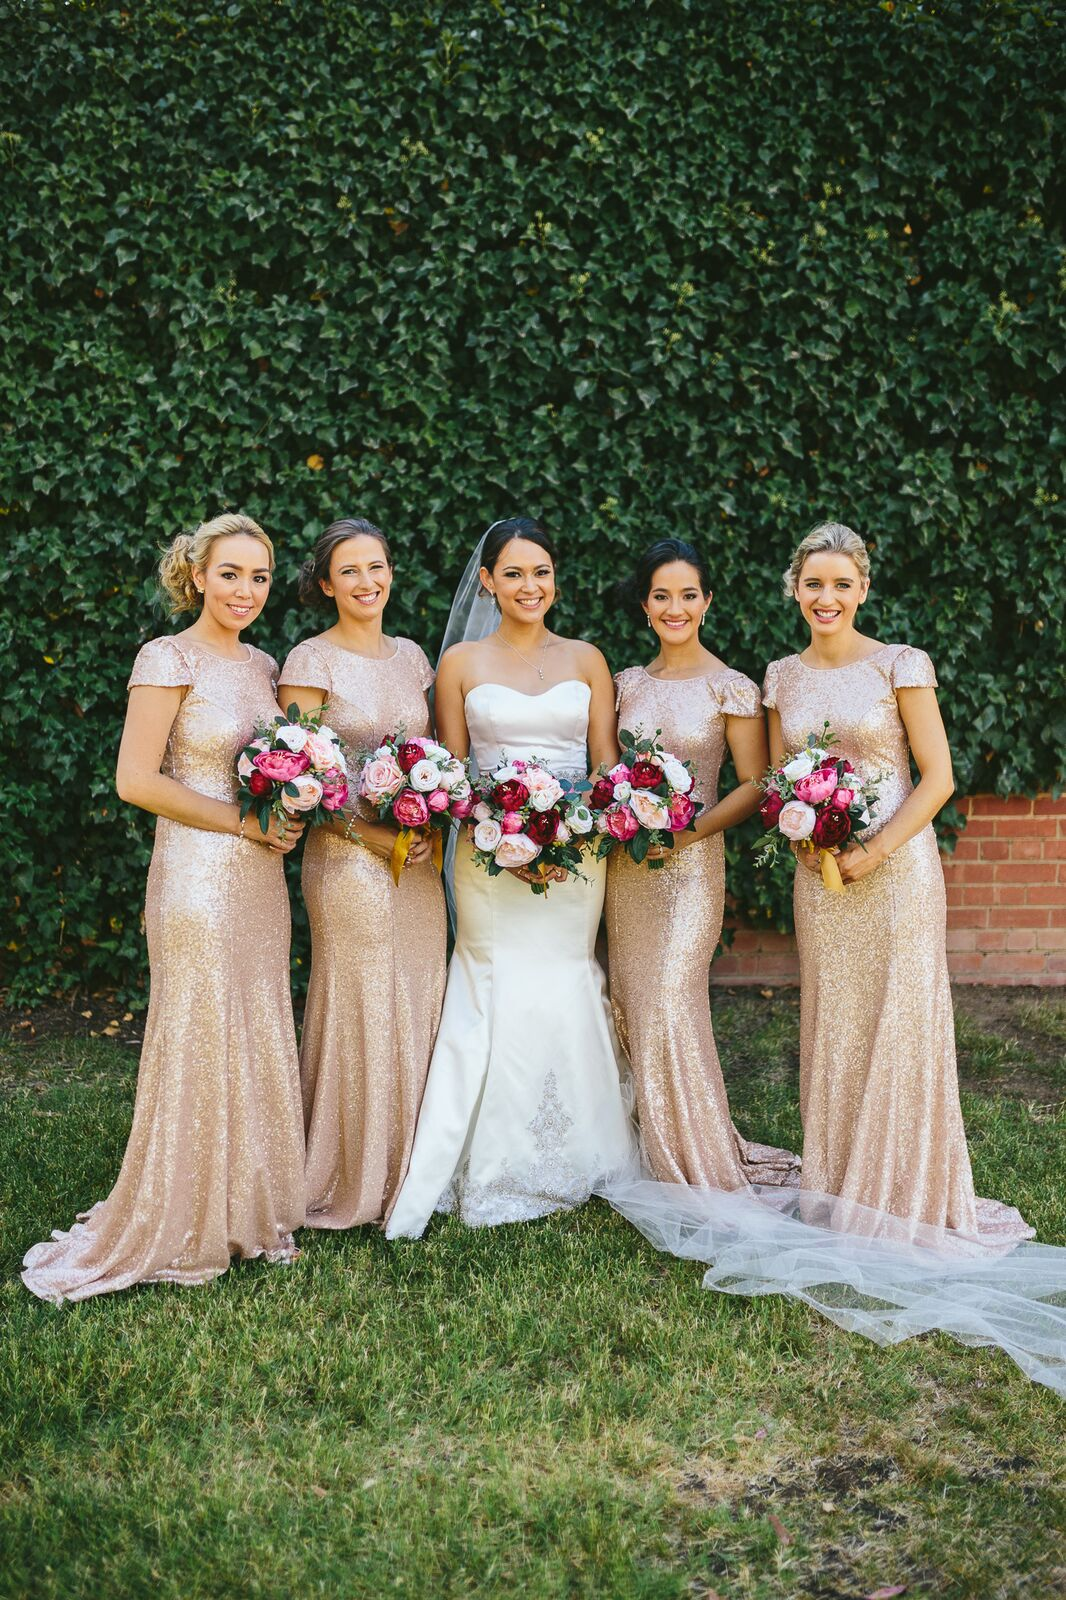 Julia delvecchio wedding